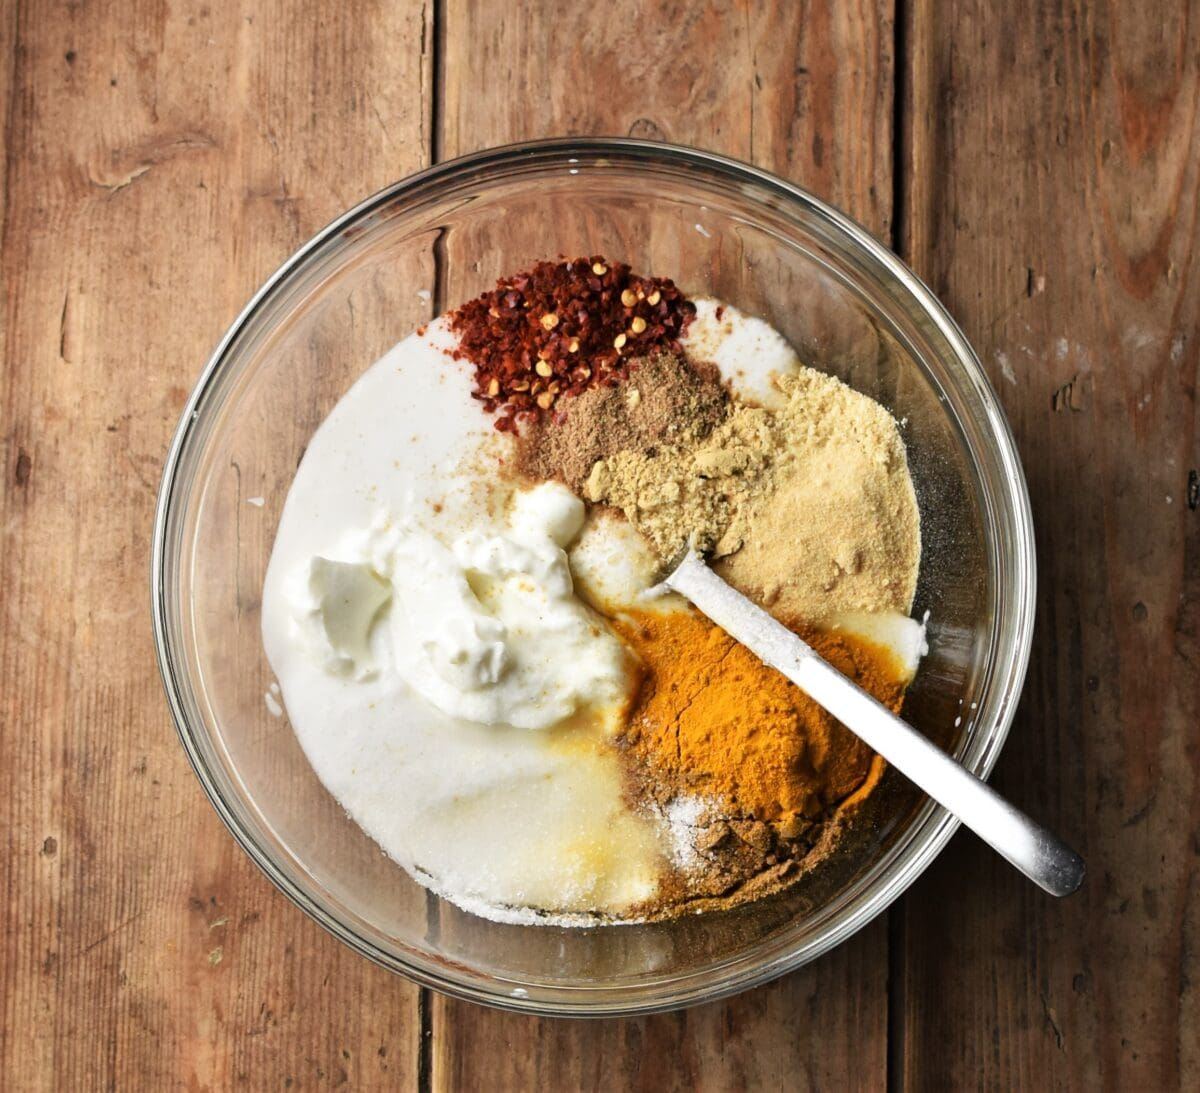 Yogurt and spices in mixing bowl with spoon.